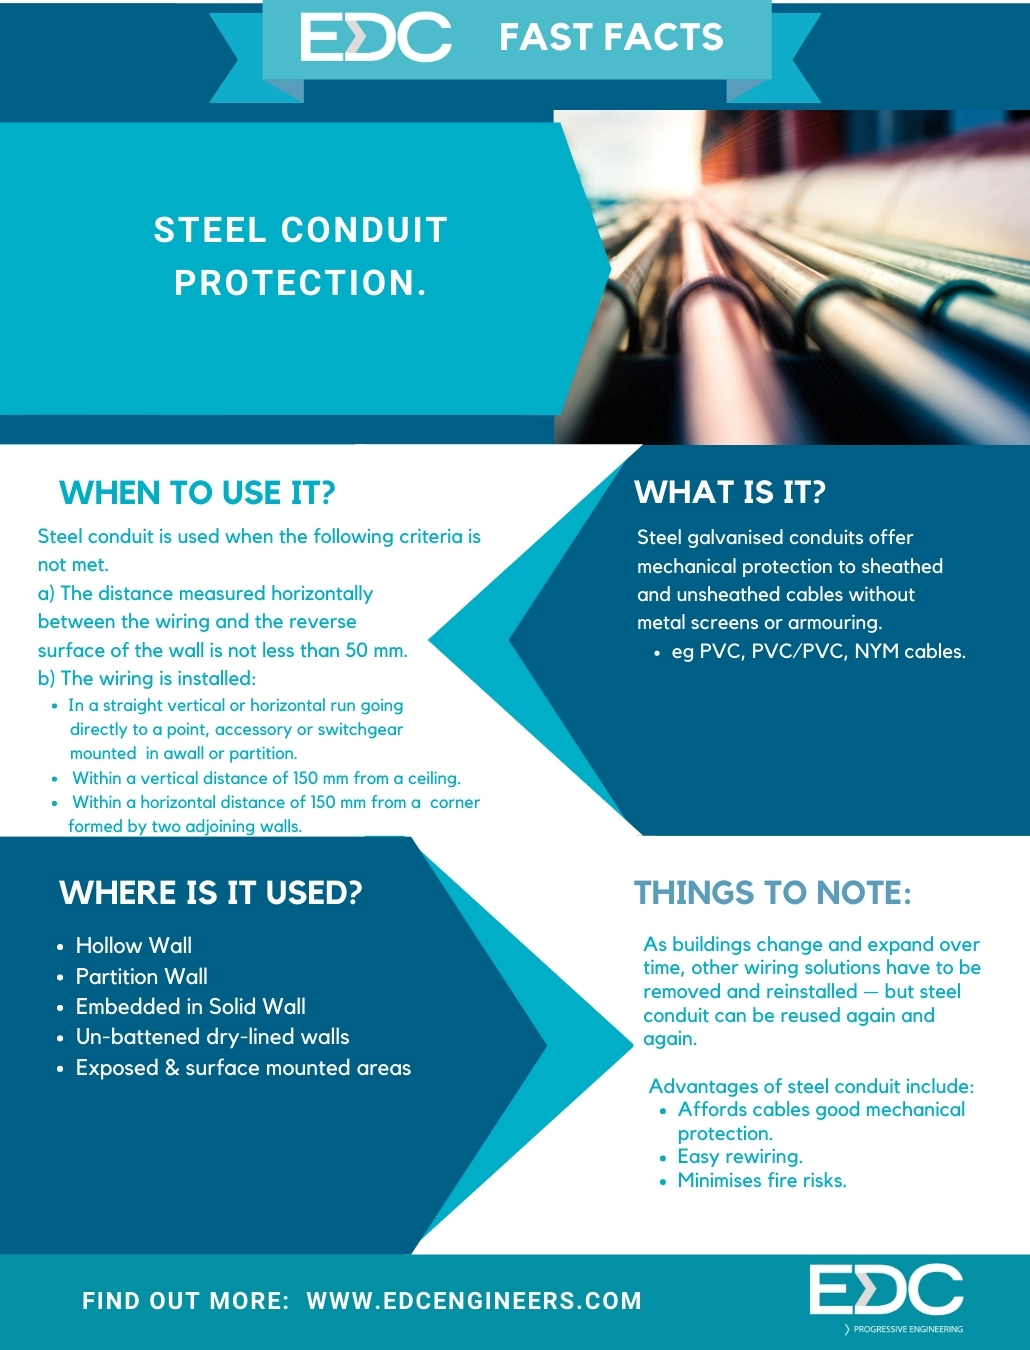 EDC Fast Facts 13 - Steel Conduit Protection.